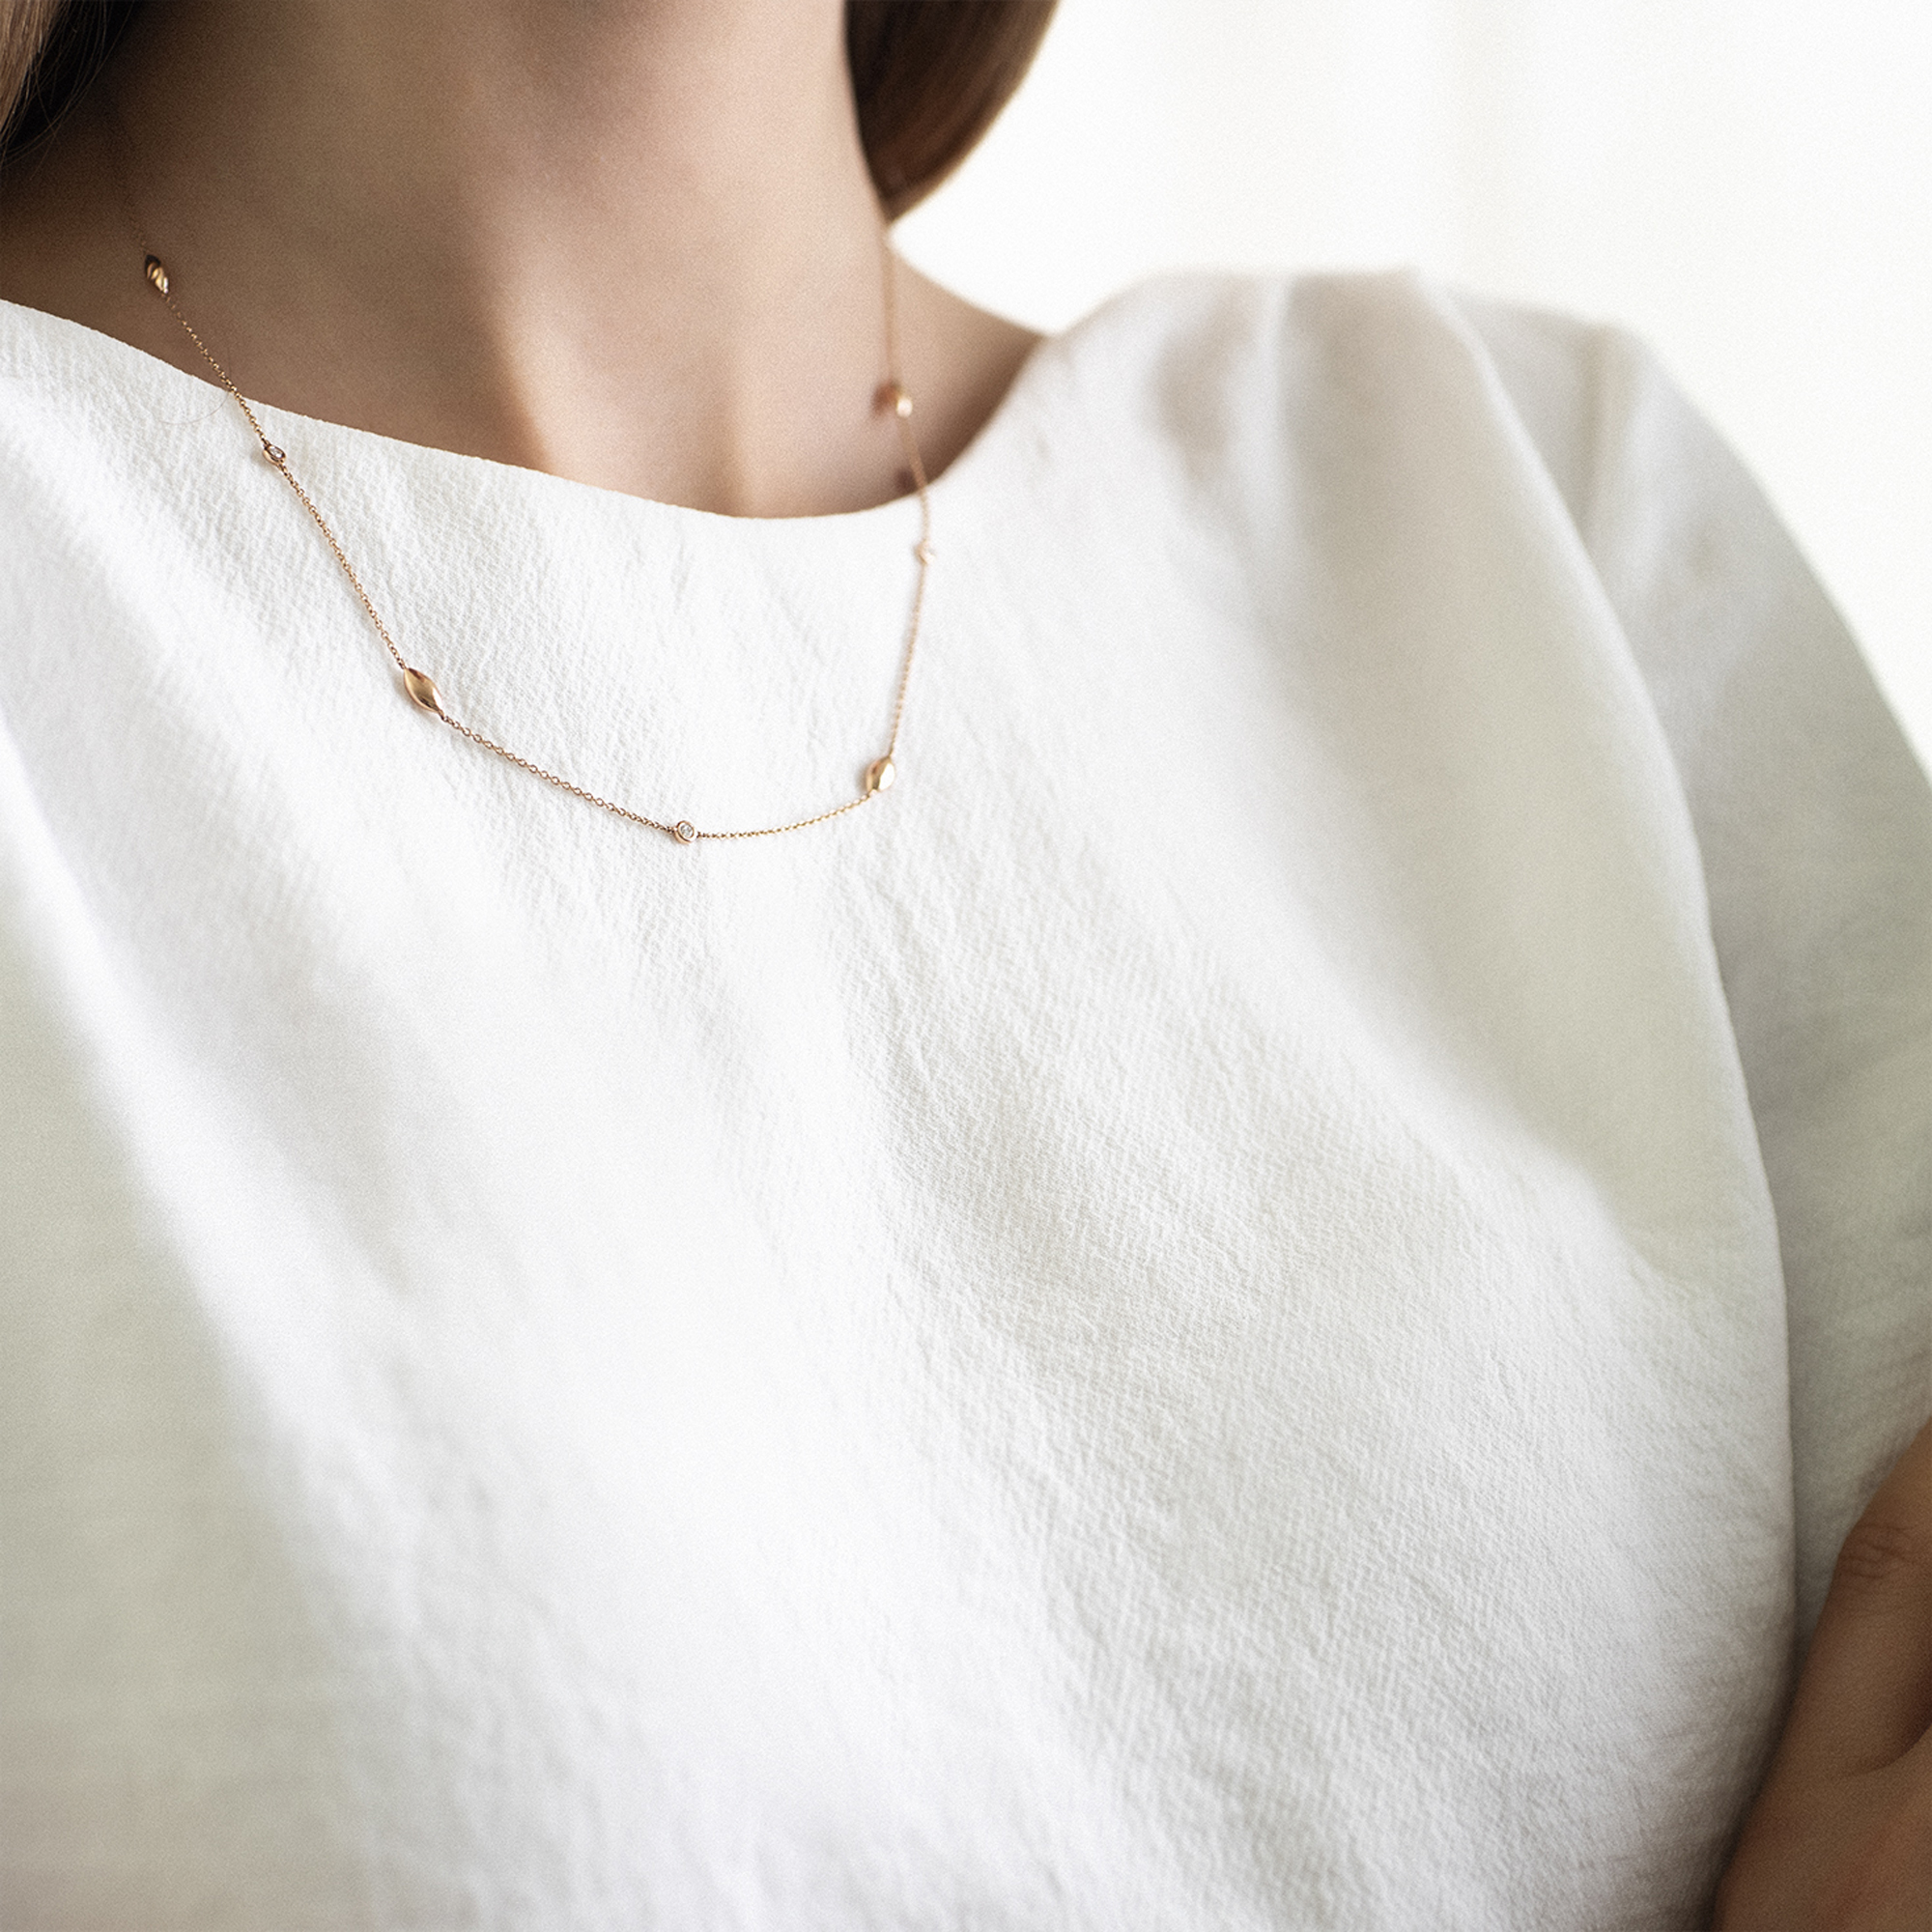 vulsini necklace in yellow gold